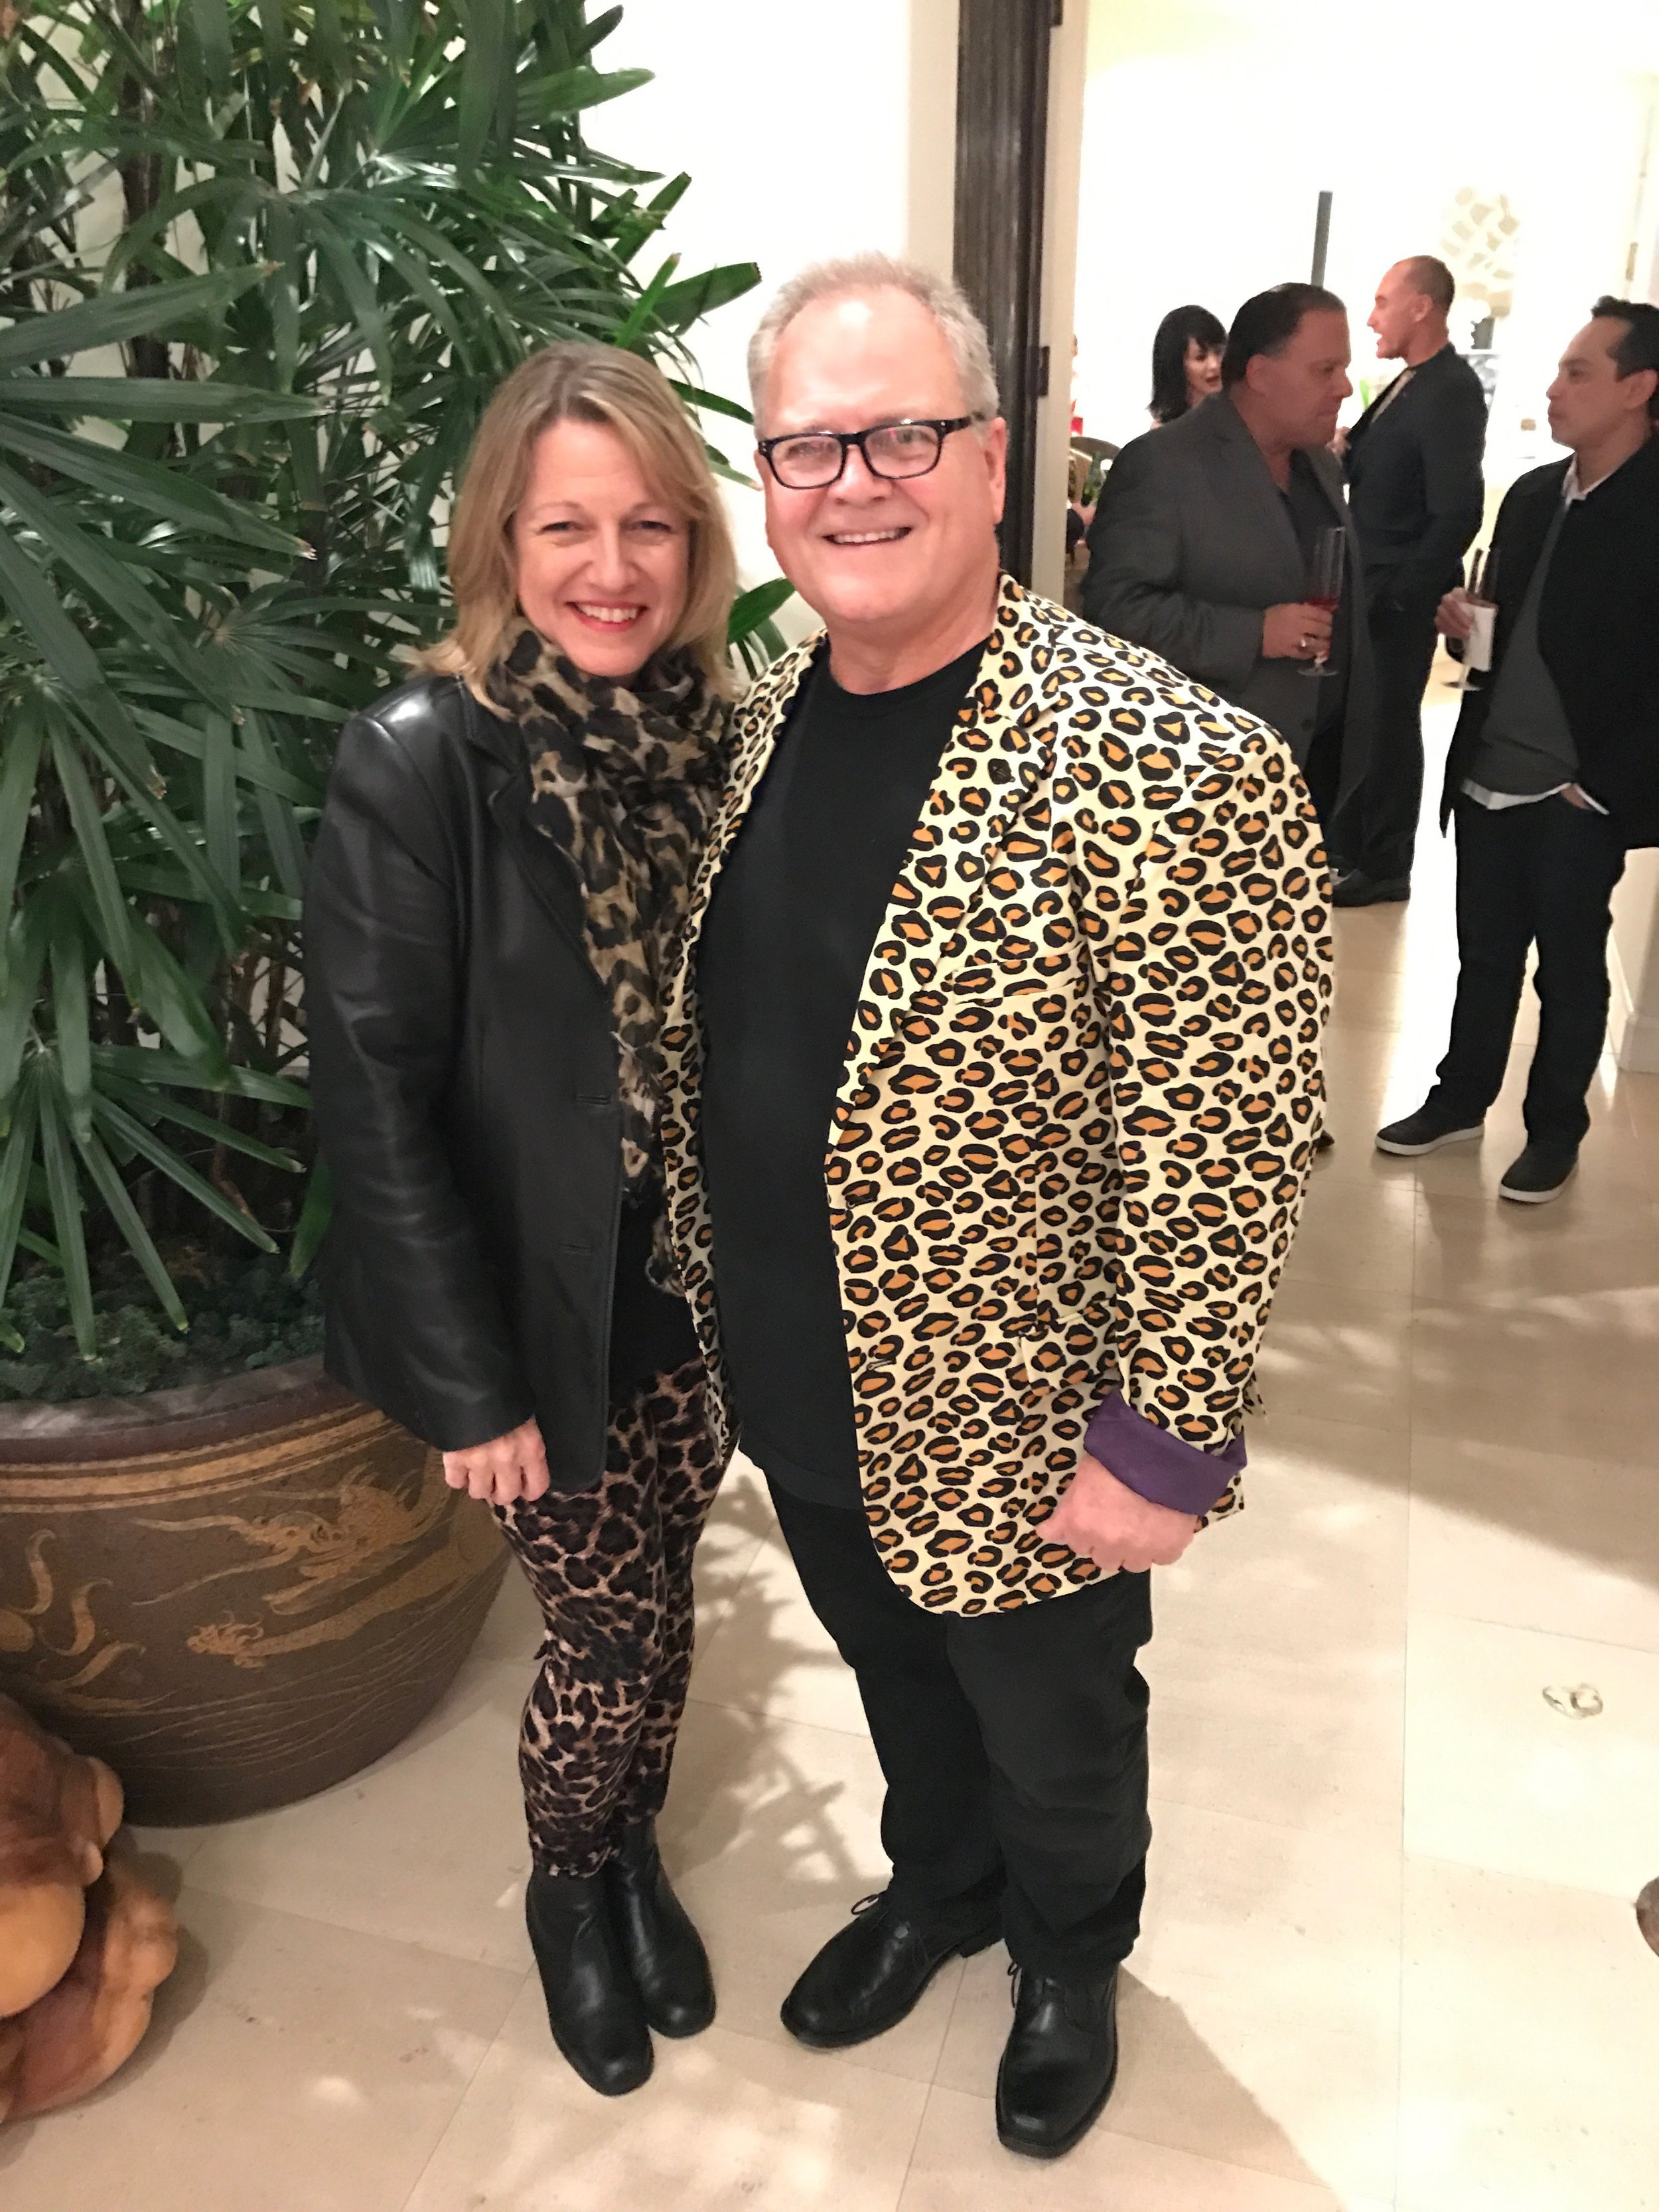 It's nice to see lovely men like Bruce and his wife take the theme seriously and look adorable